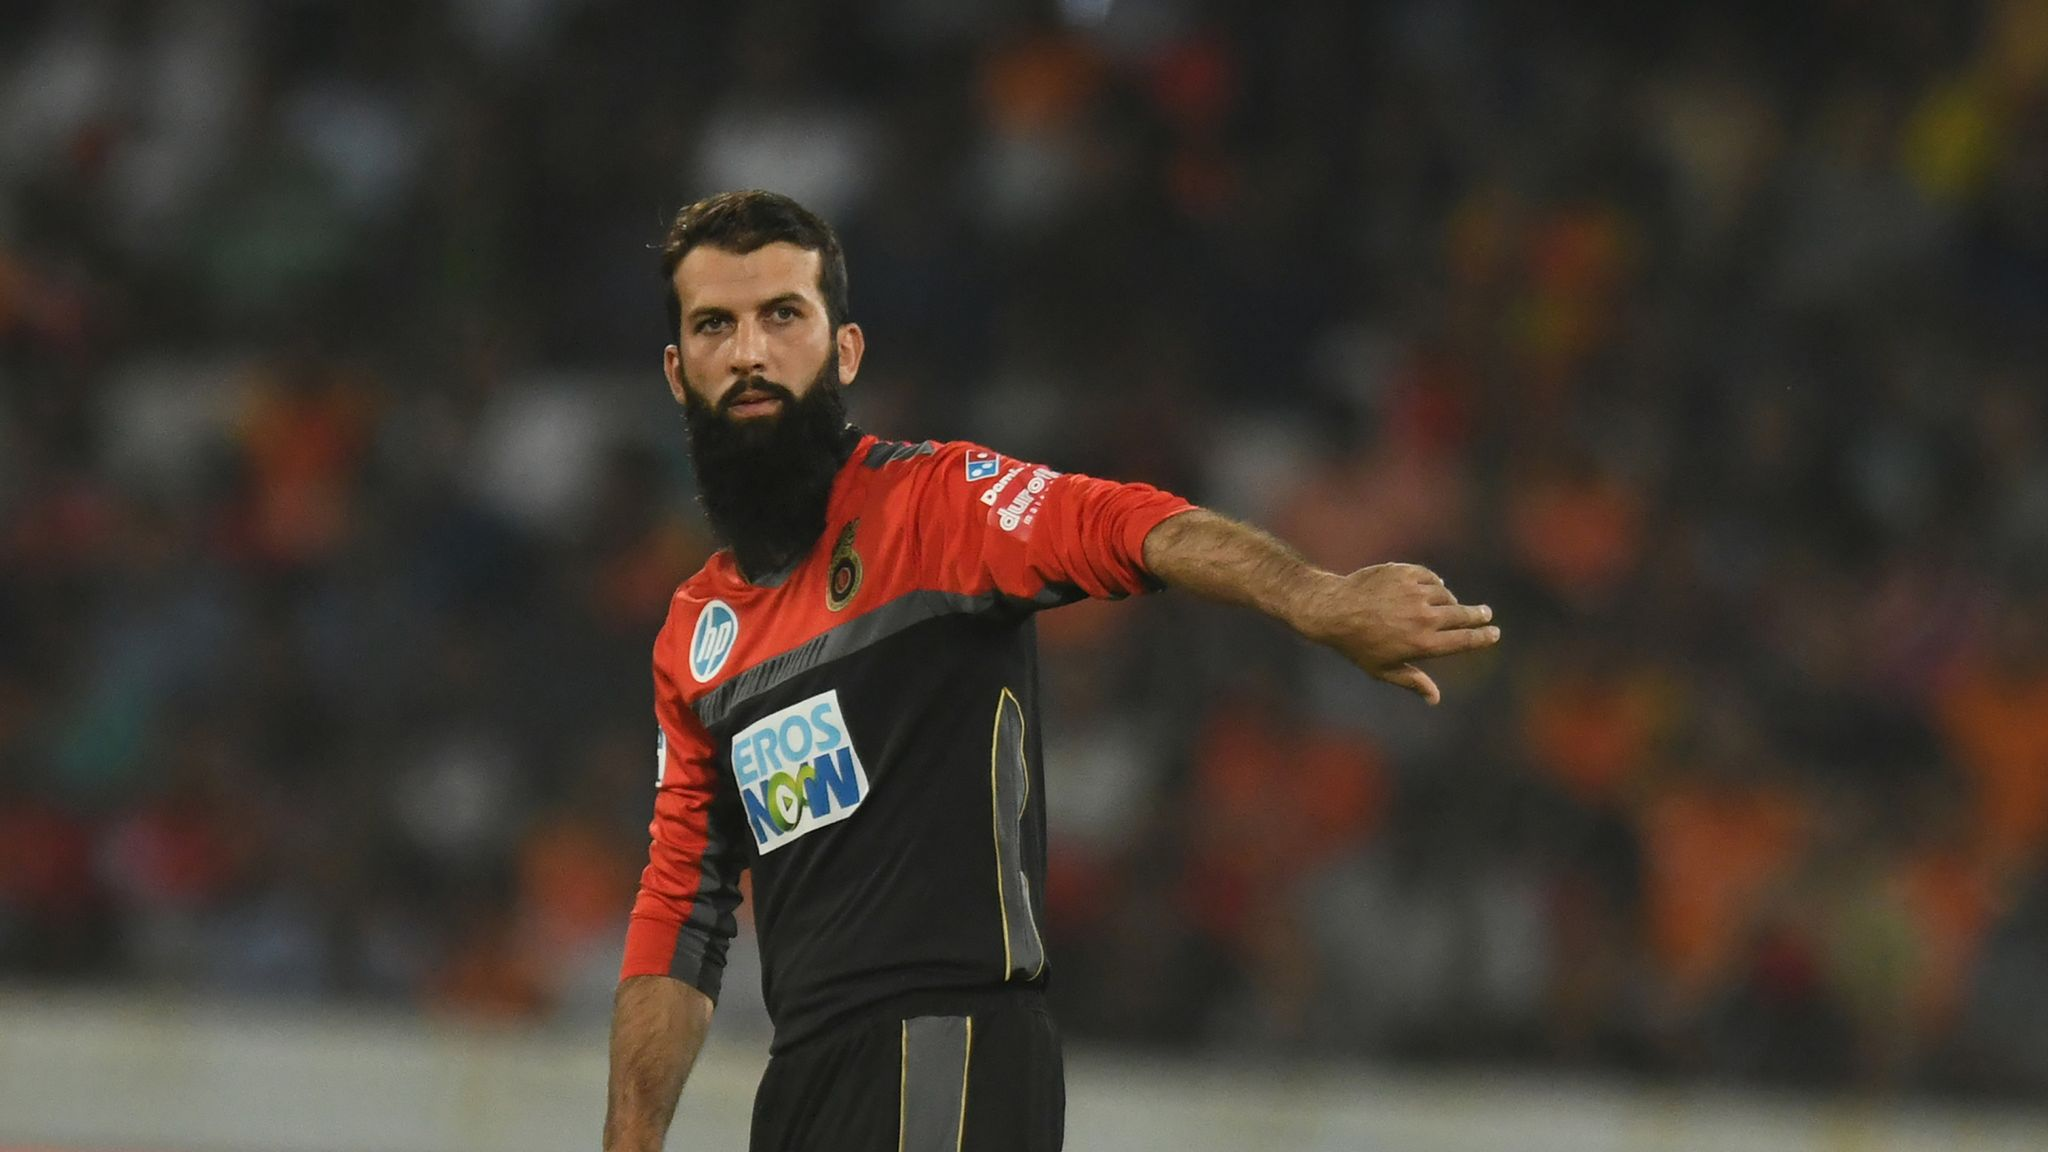 Moeen Ali stars in losing cause for Royal Challengers Bangalore in IPL | Cricket News | Sky Sports